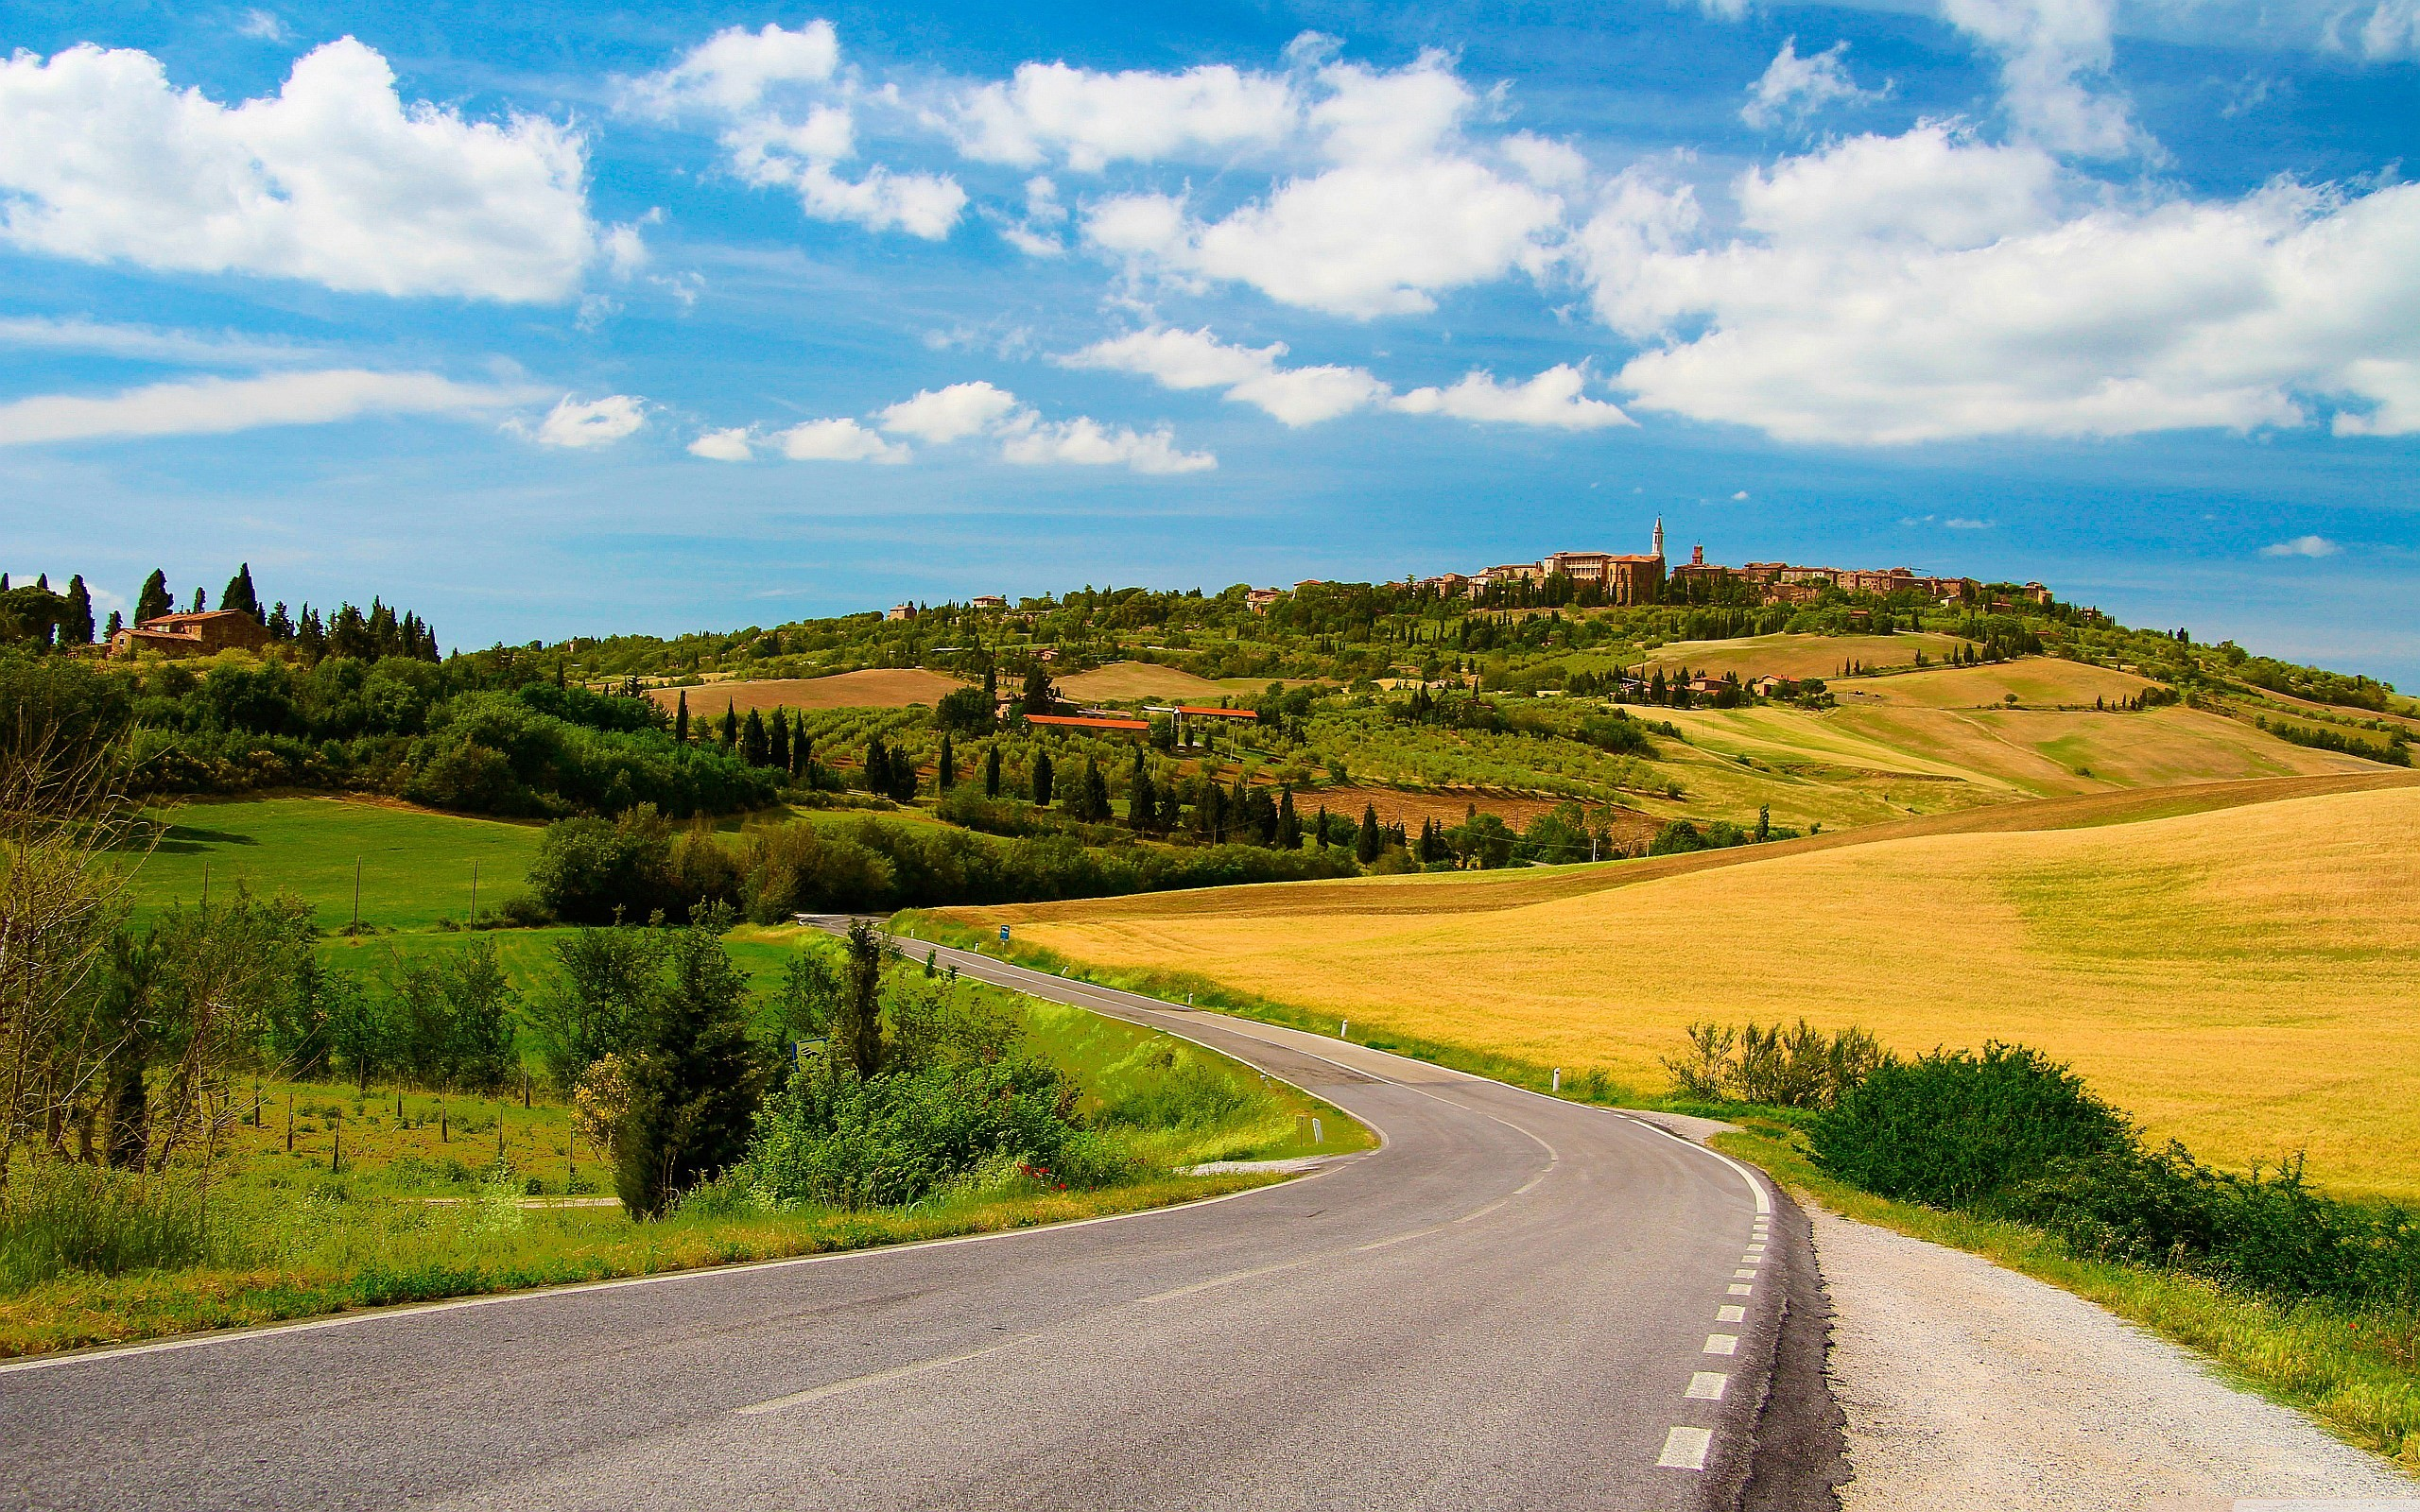 2560x1600 Country Road In Tuscany wallpaper free